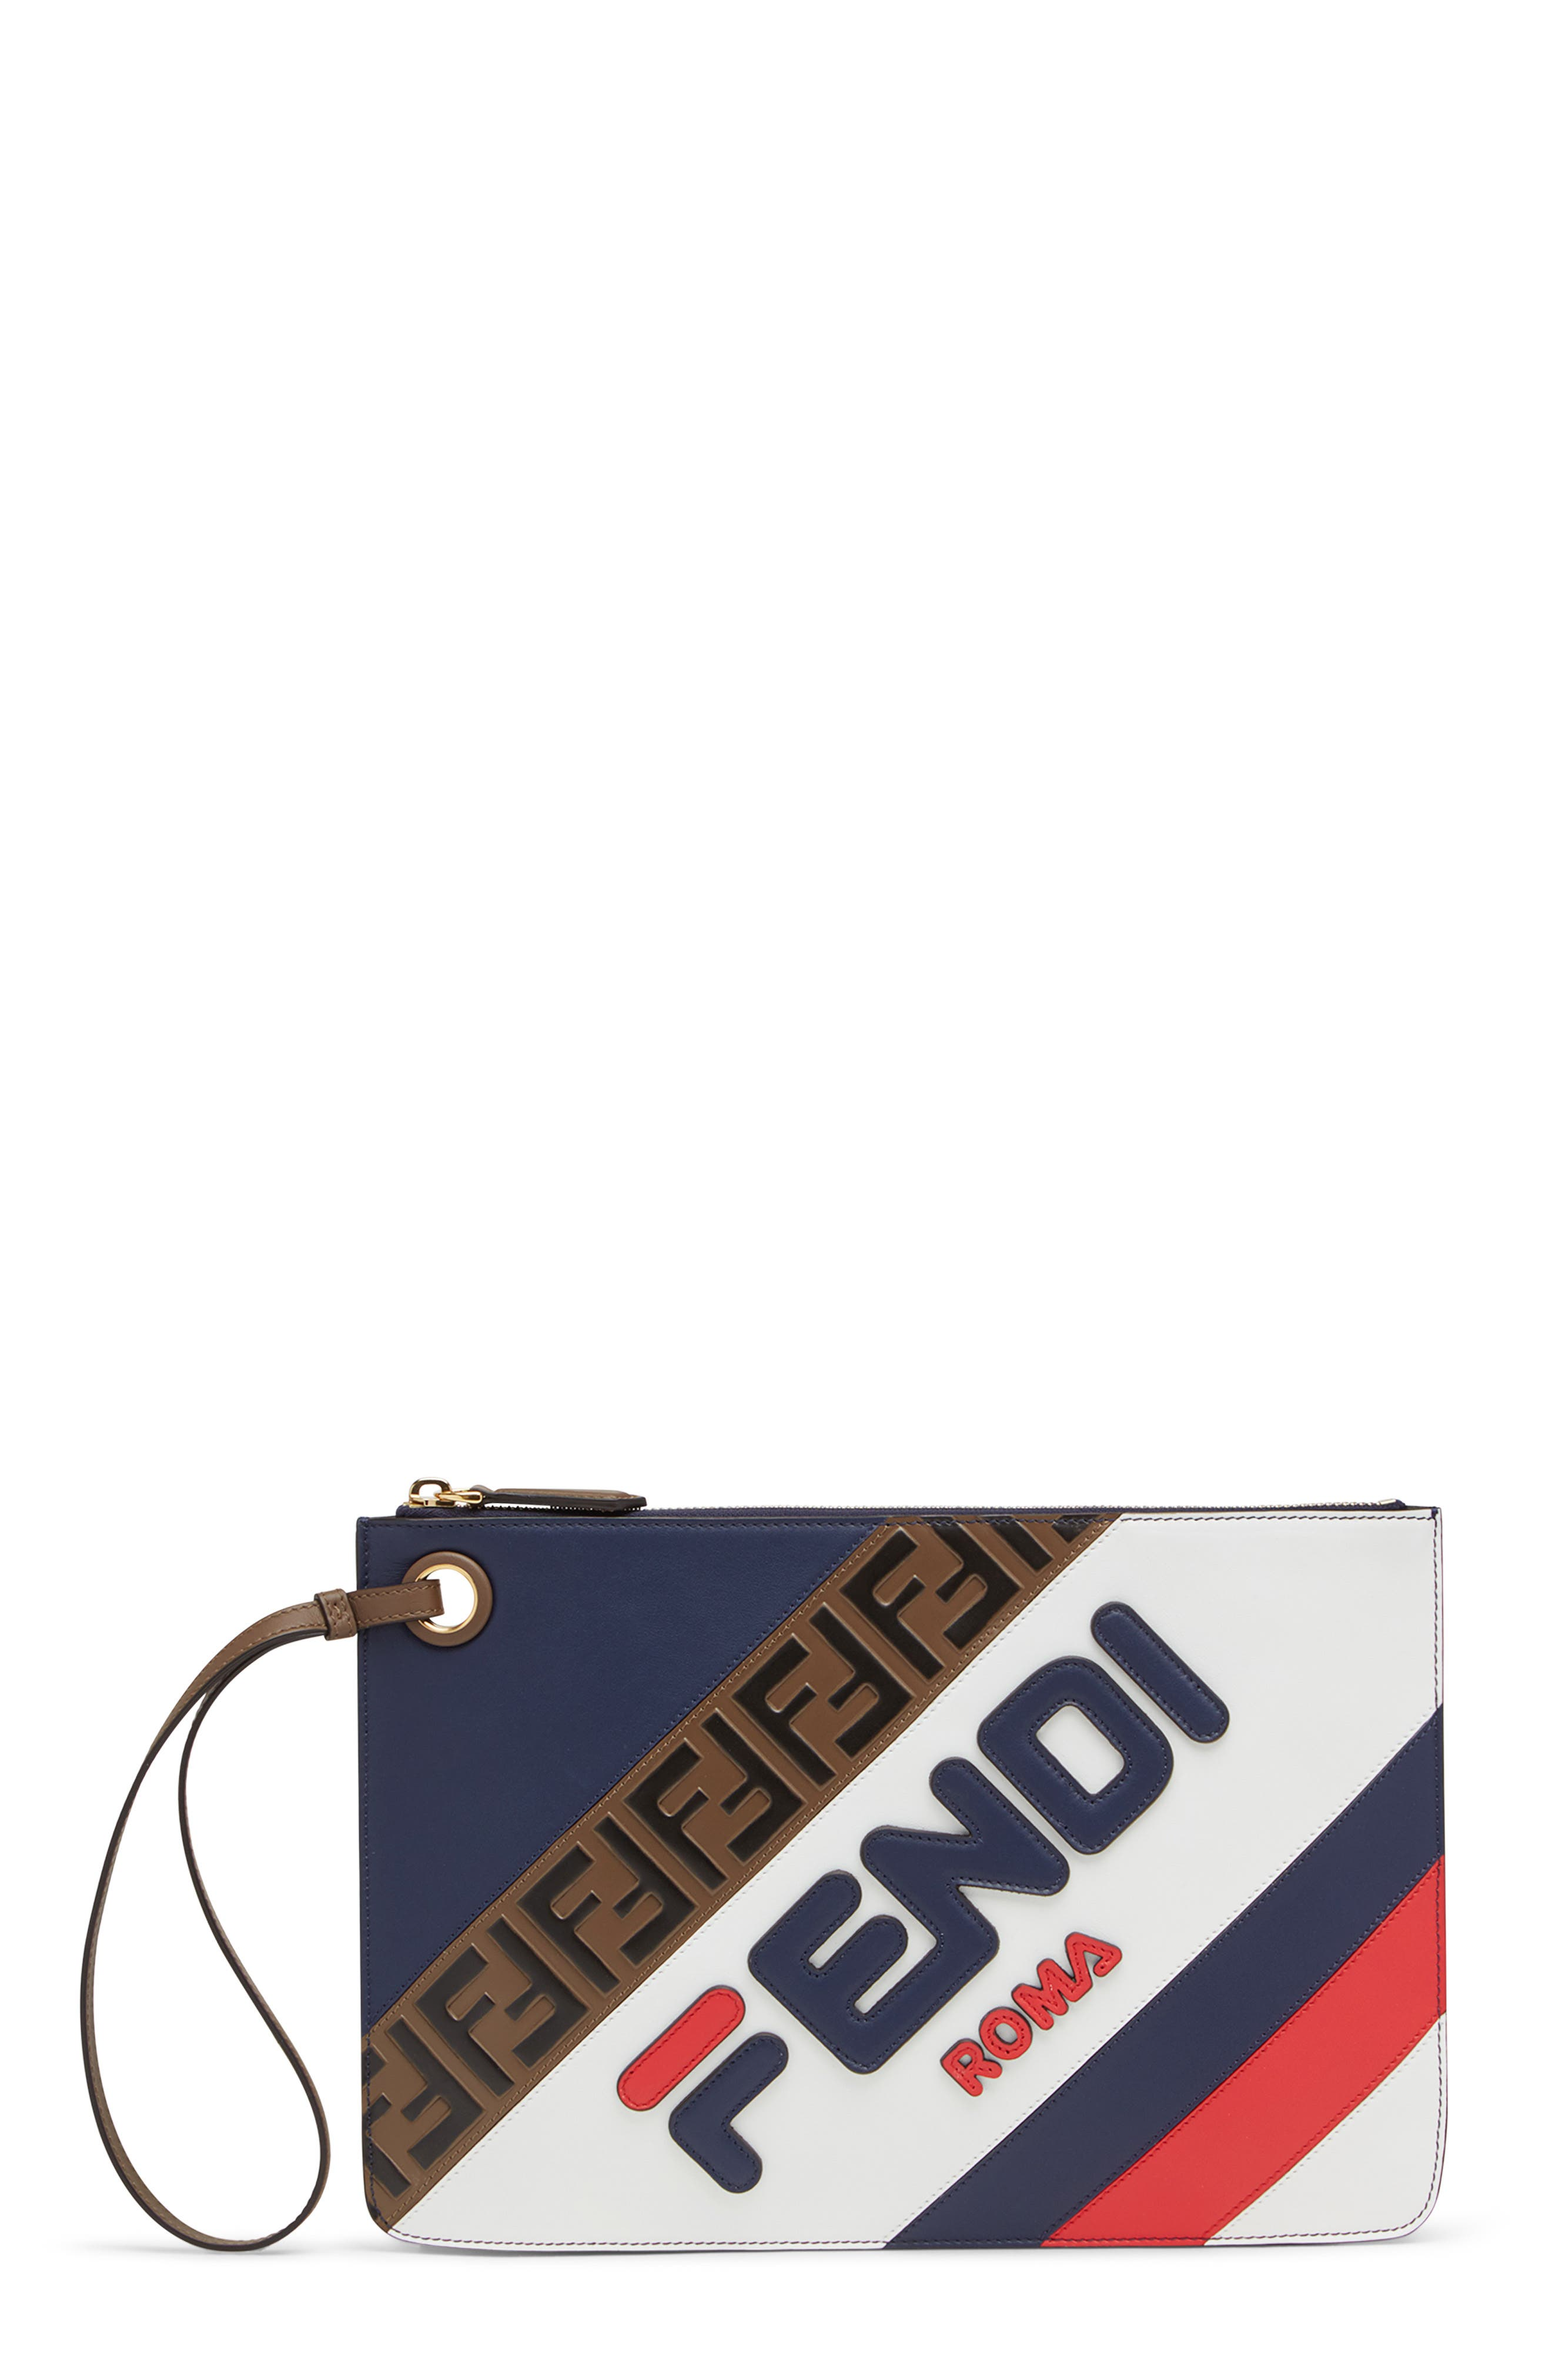 x FILA Medium Mania Logo Leather Clutch,                             Main thumbnail 1, color,                             BLUE/ BERRY MULTI